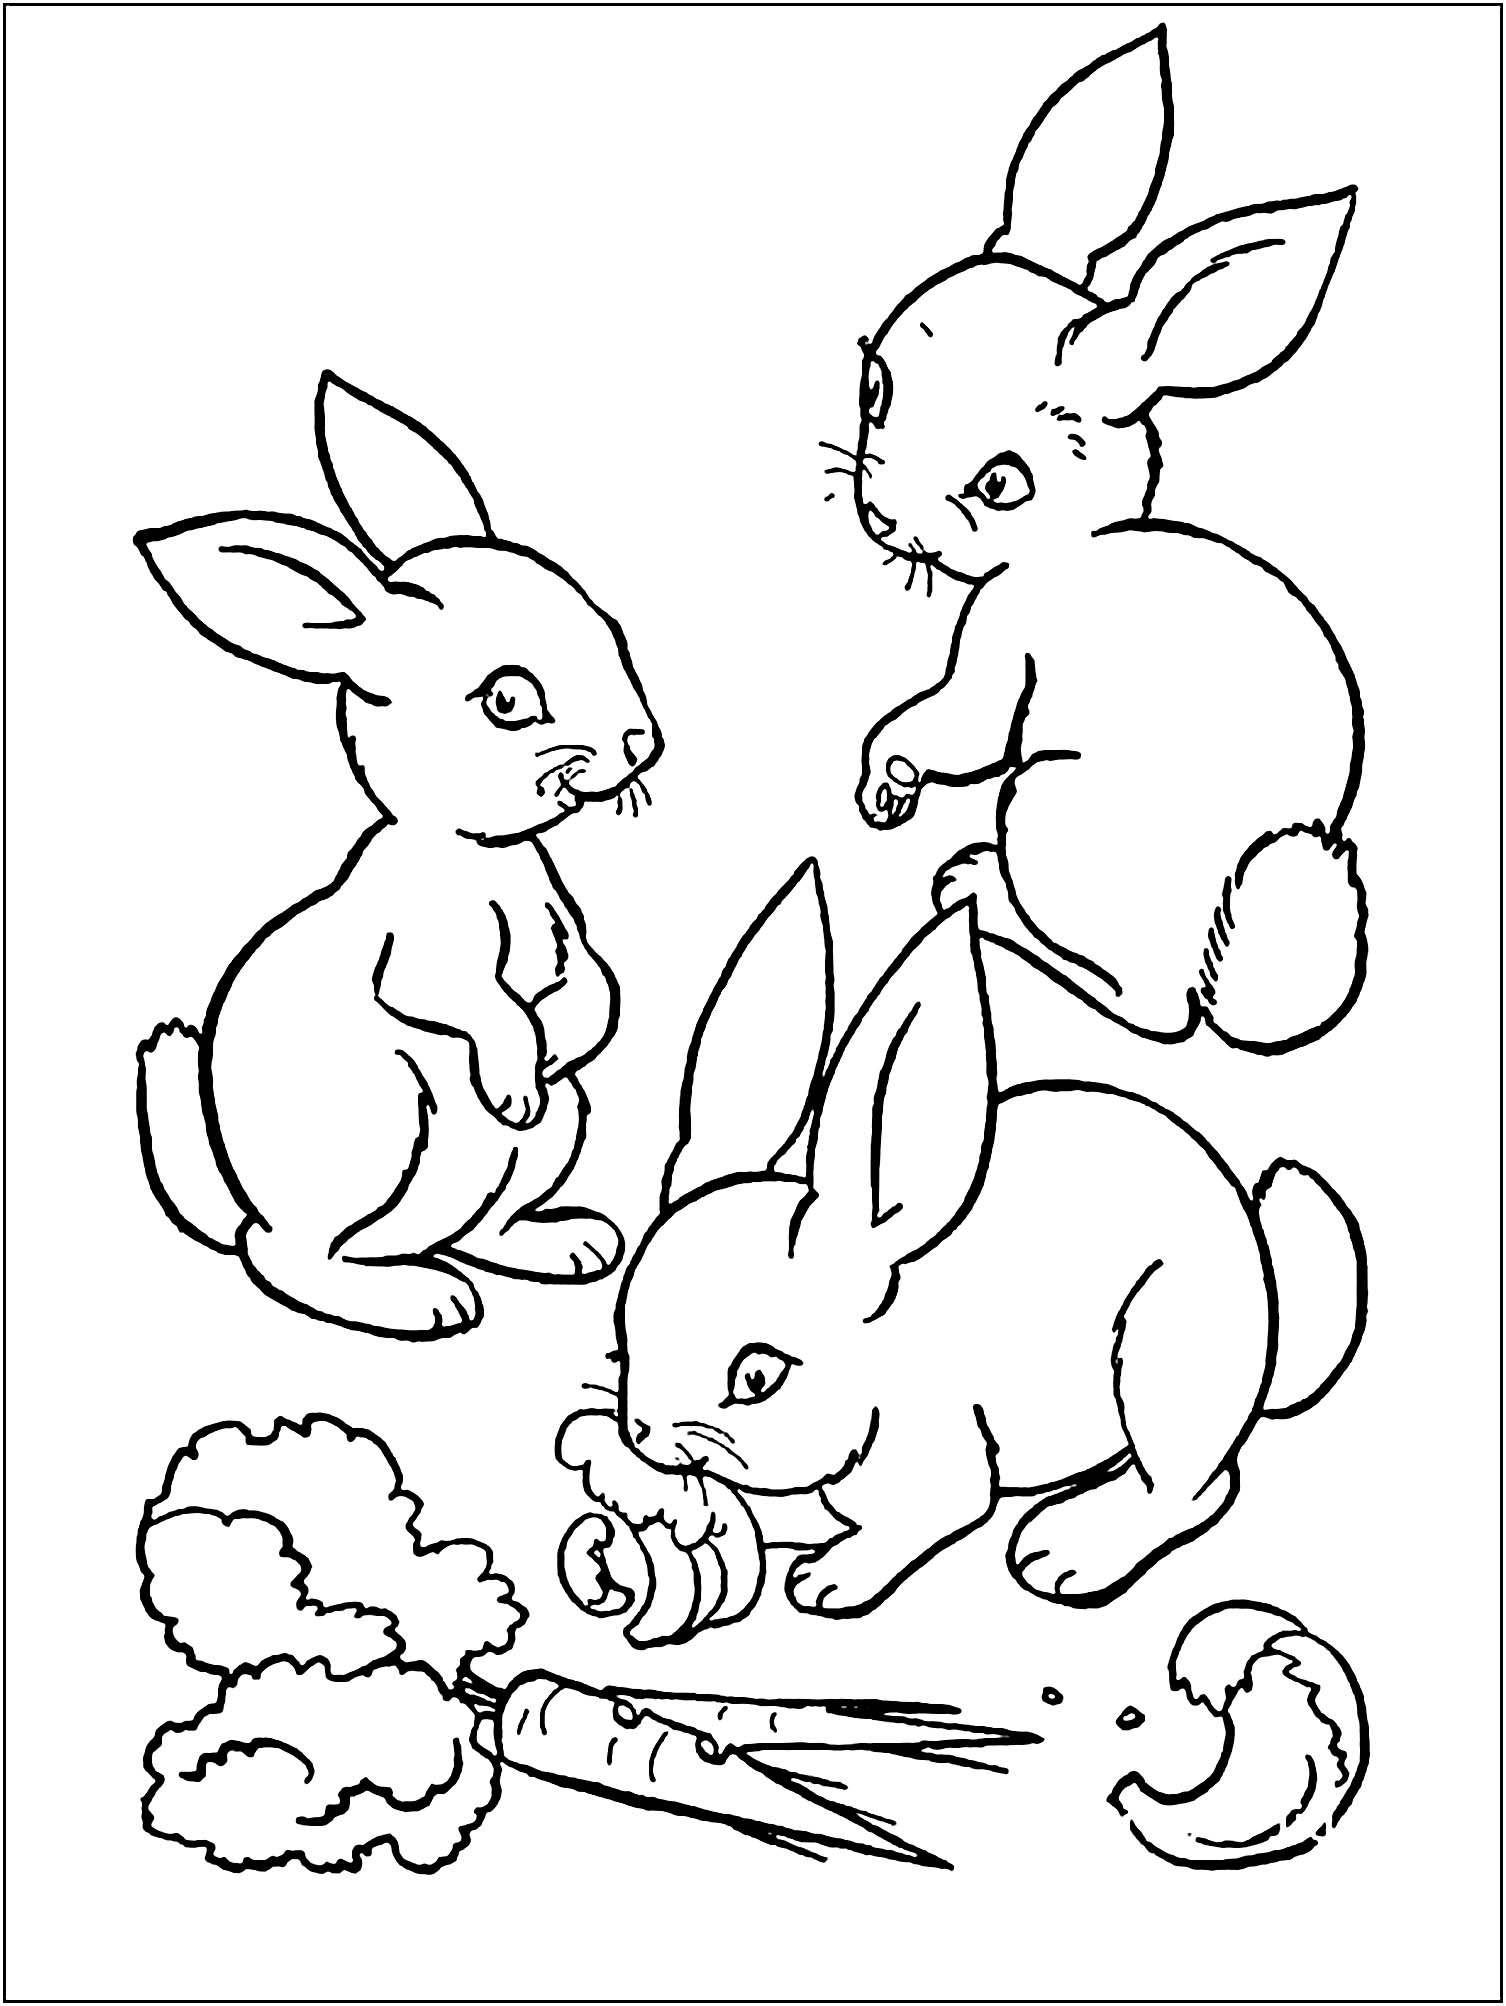 rabbit pictures for kids for colouring bunny coloring pages best coloring pages for kids pictures kids for colouring for rabbit